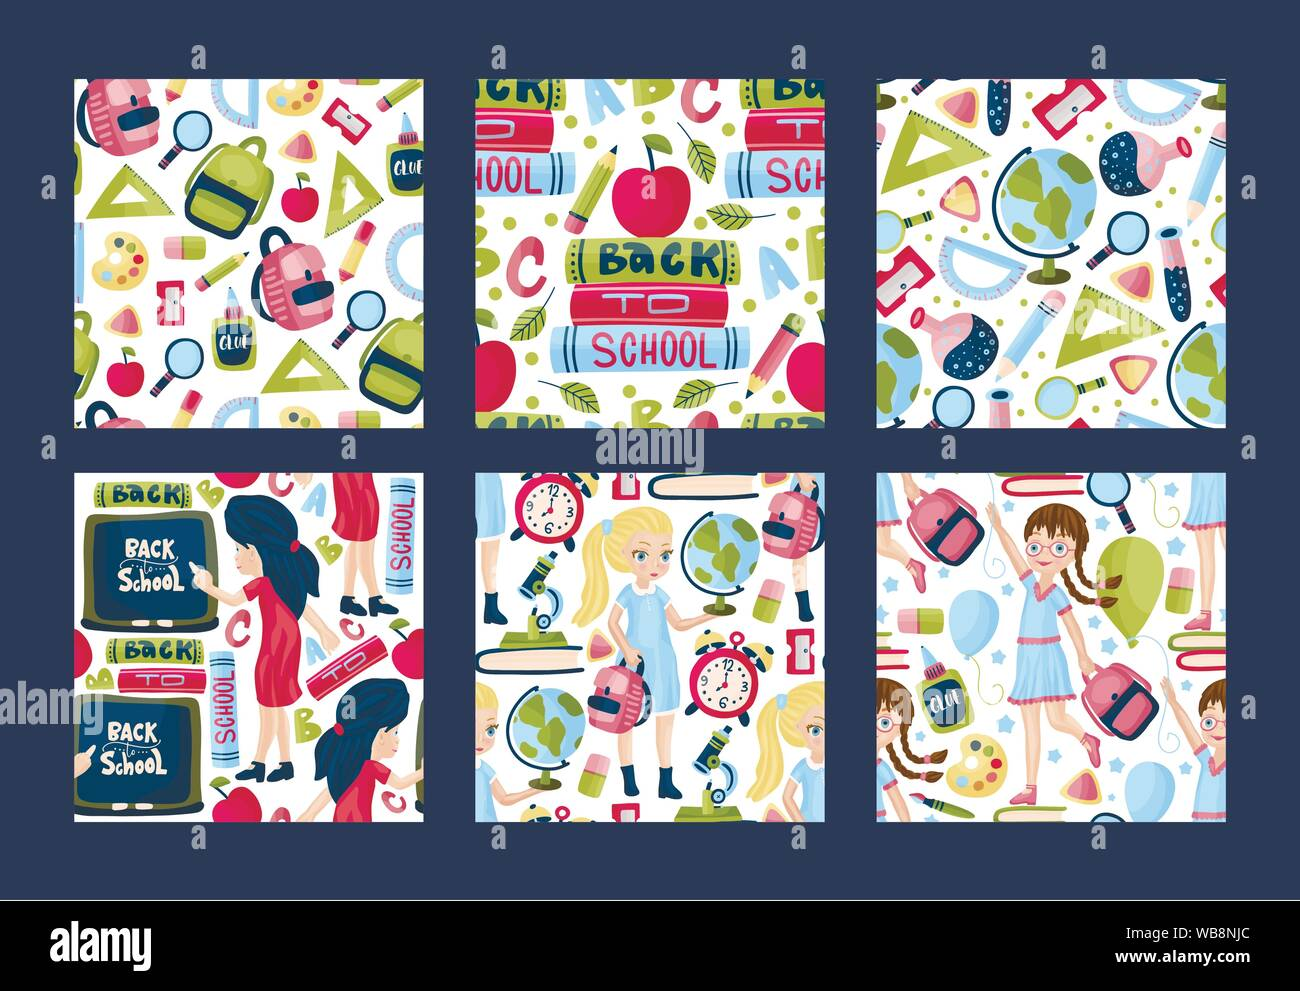 Back School Poster Design In Stock Photos & Back School